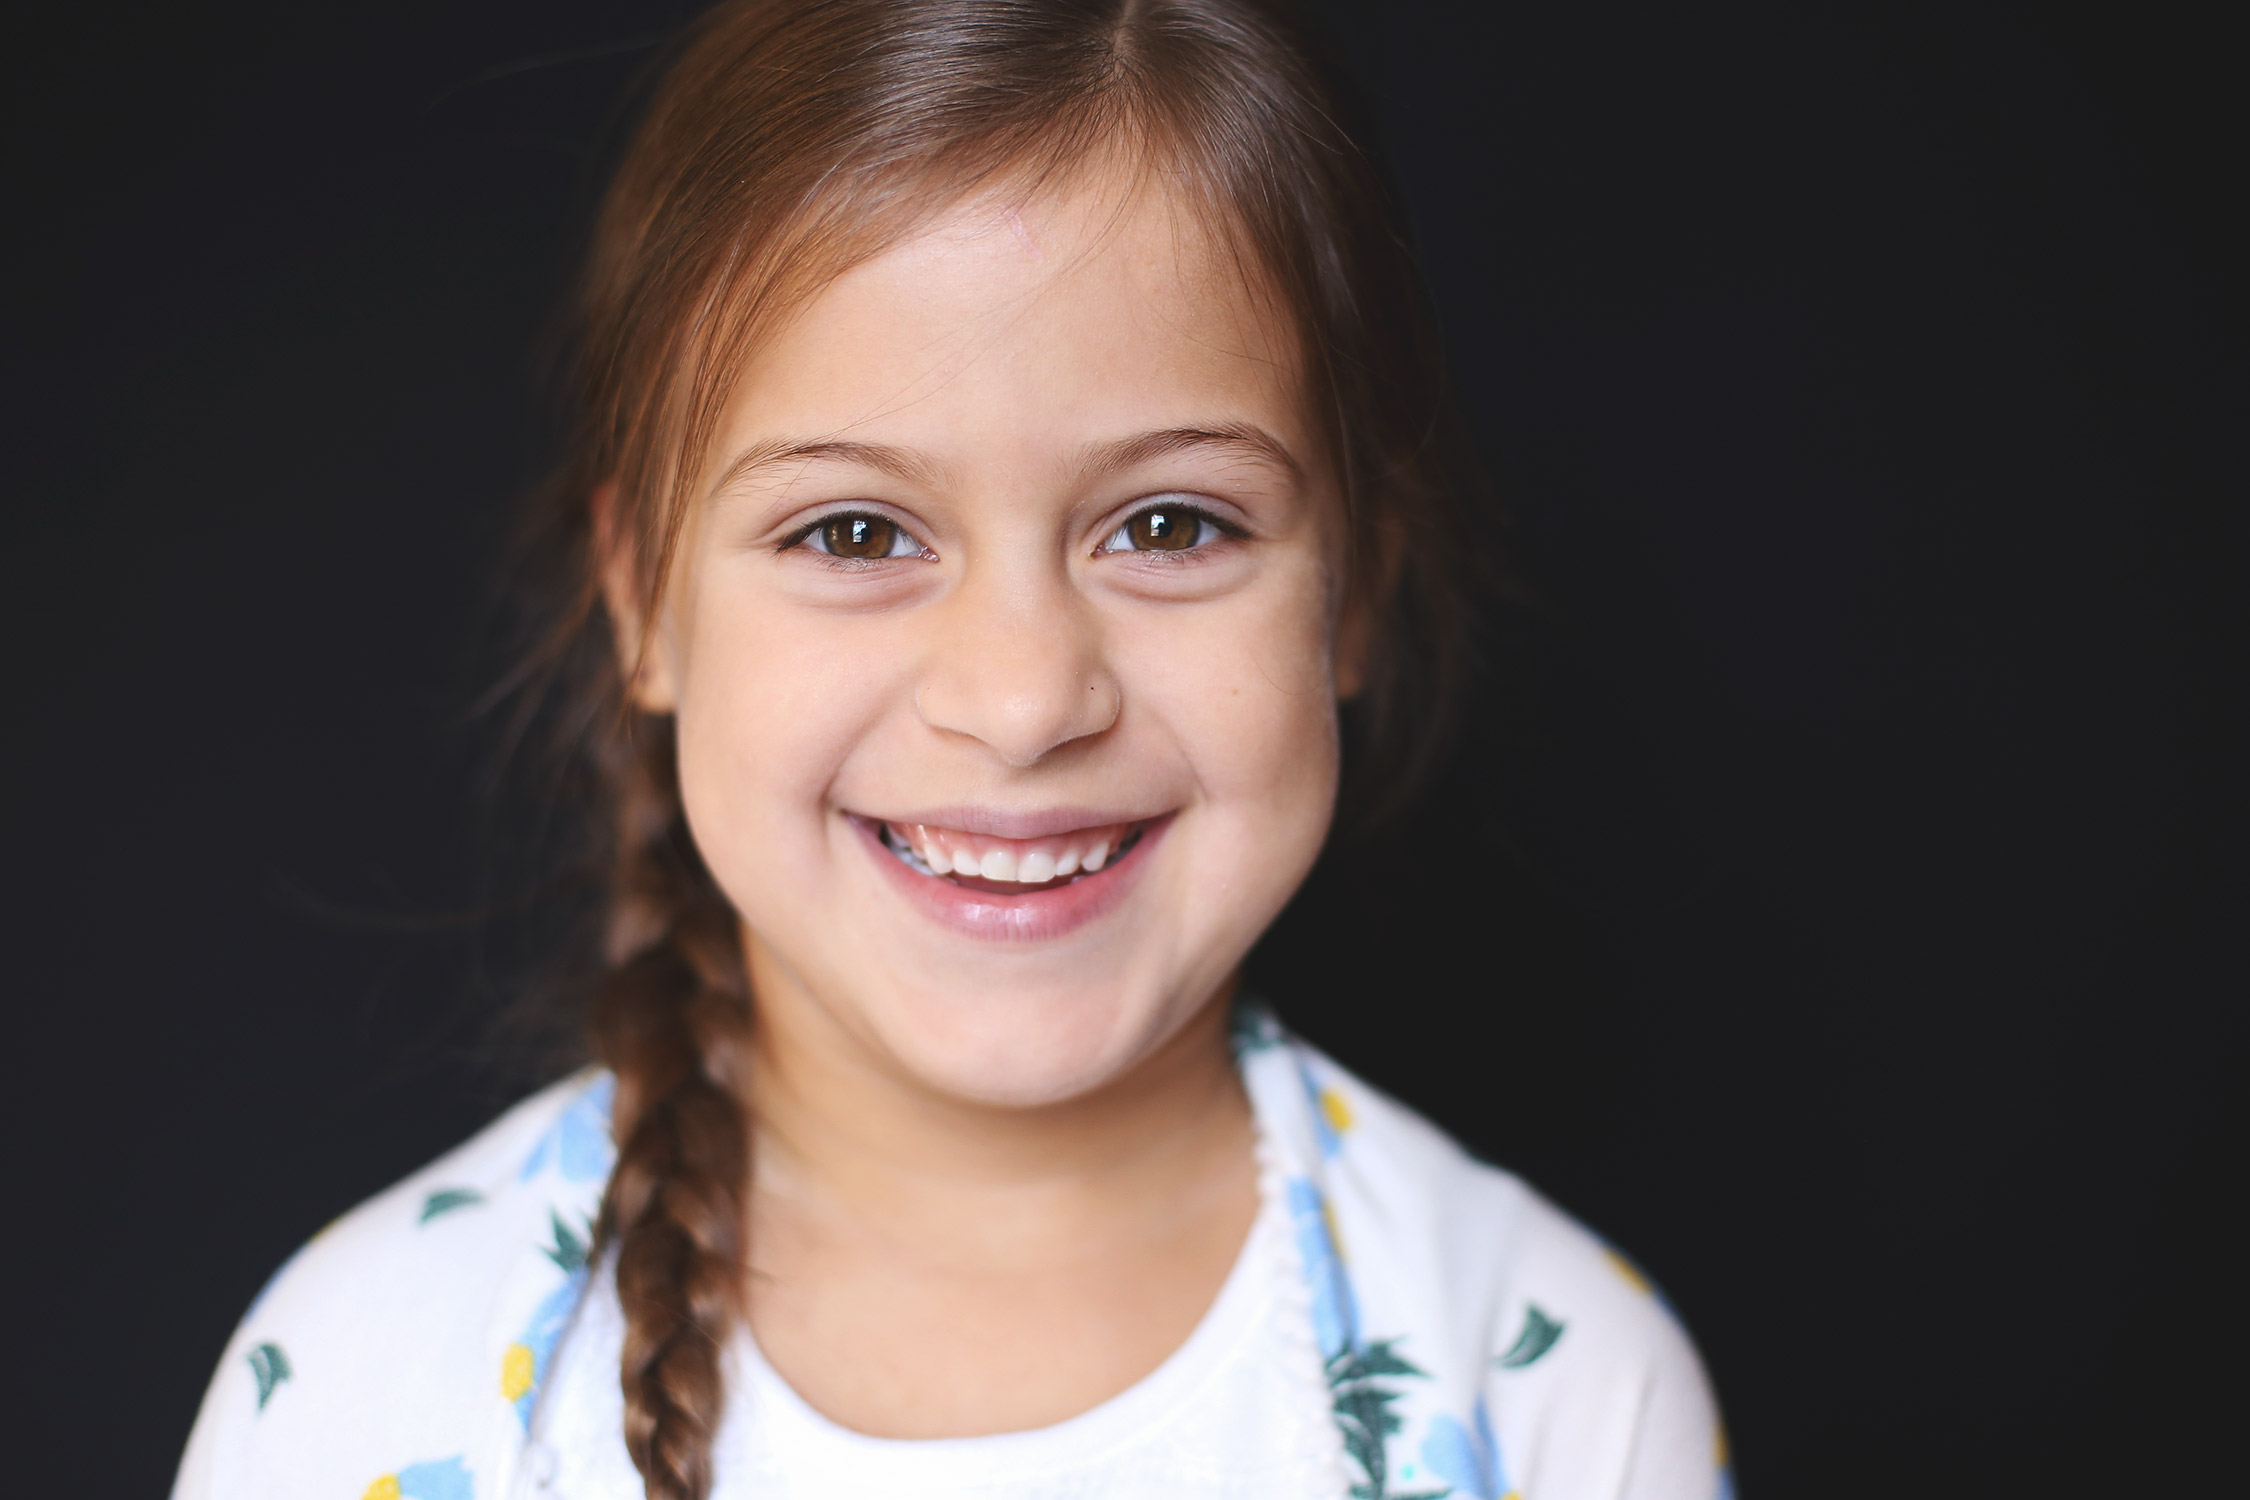 Young girl with braided hair smiling at camera   St. Louis School Photography